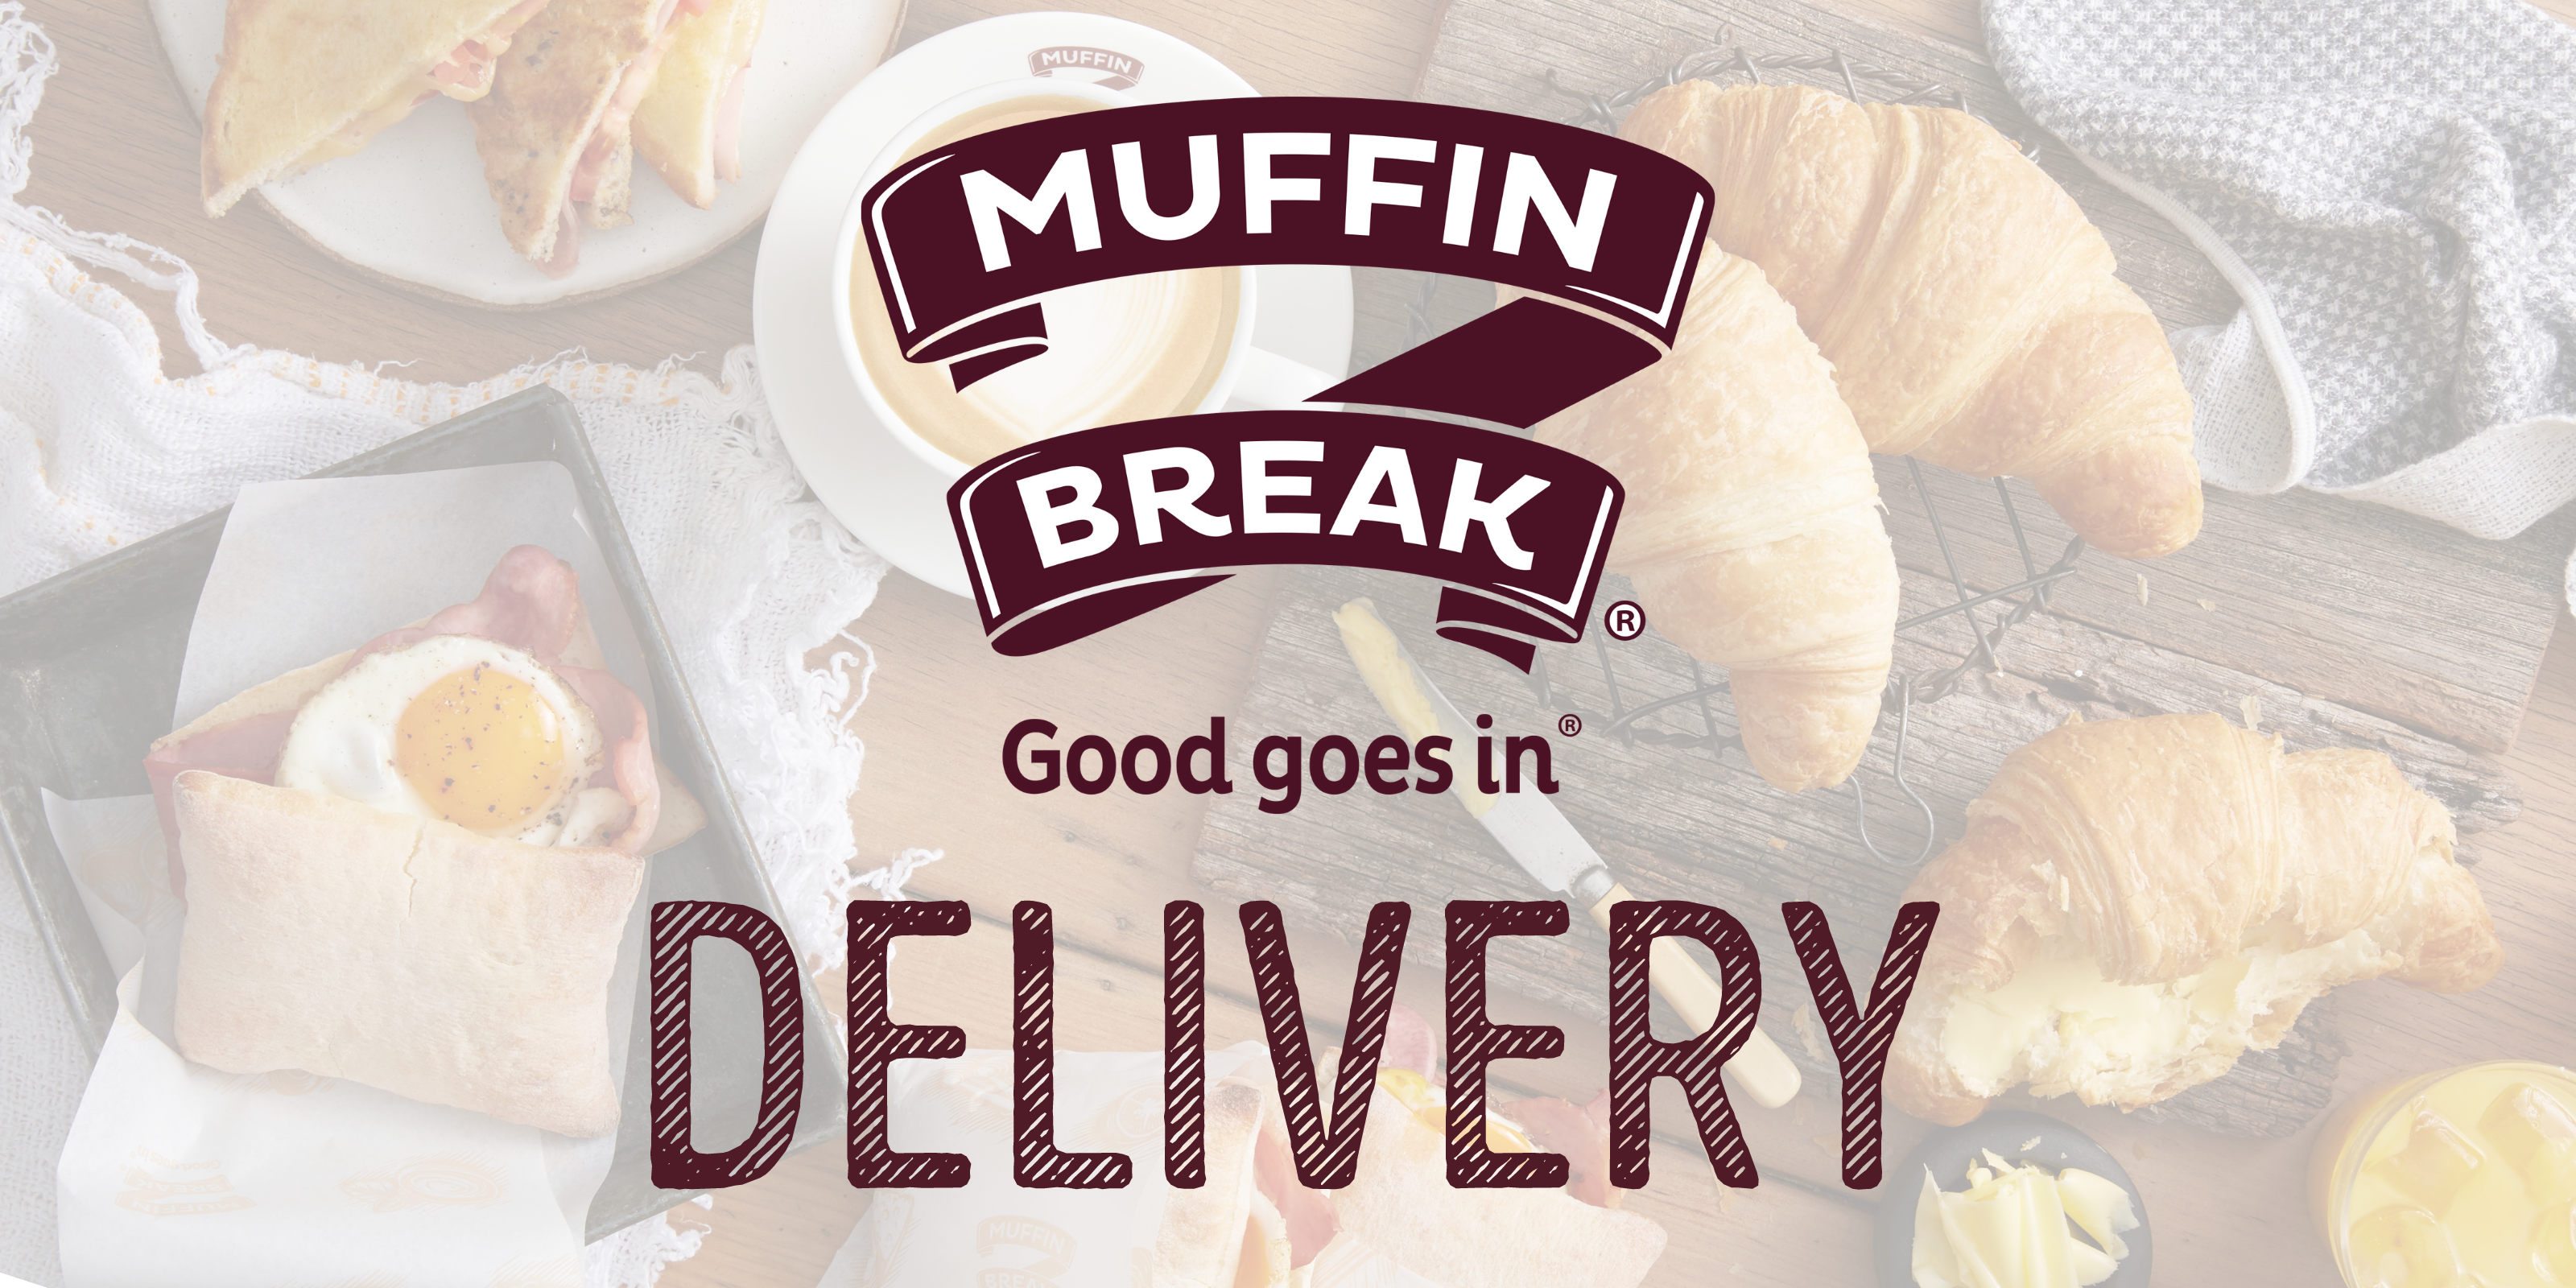 Muffin Break now offering Delivery!